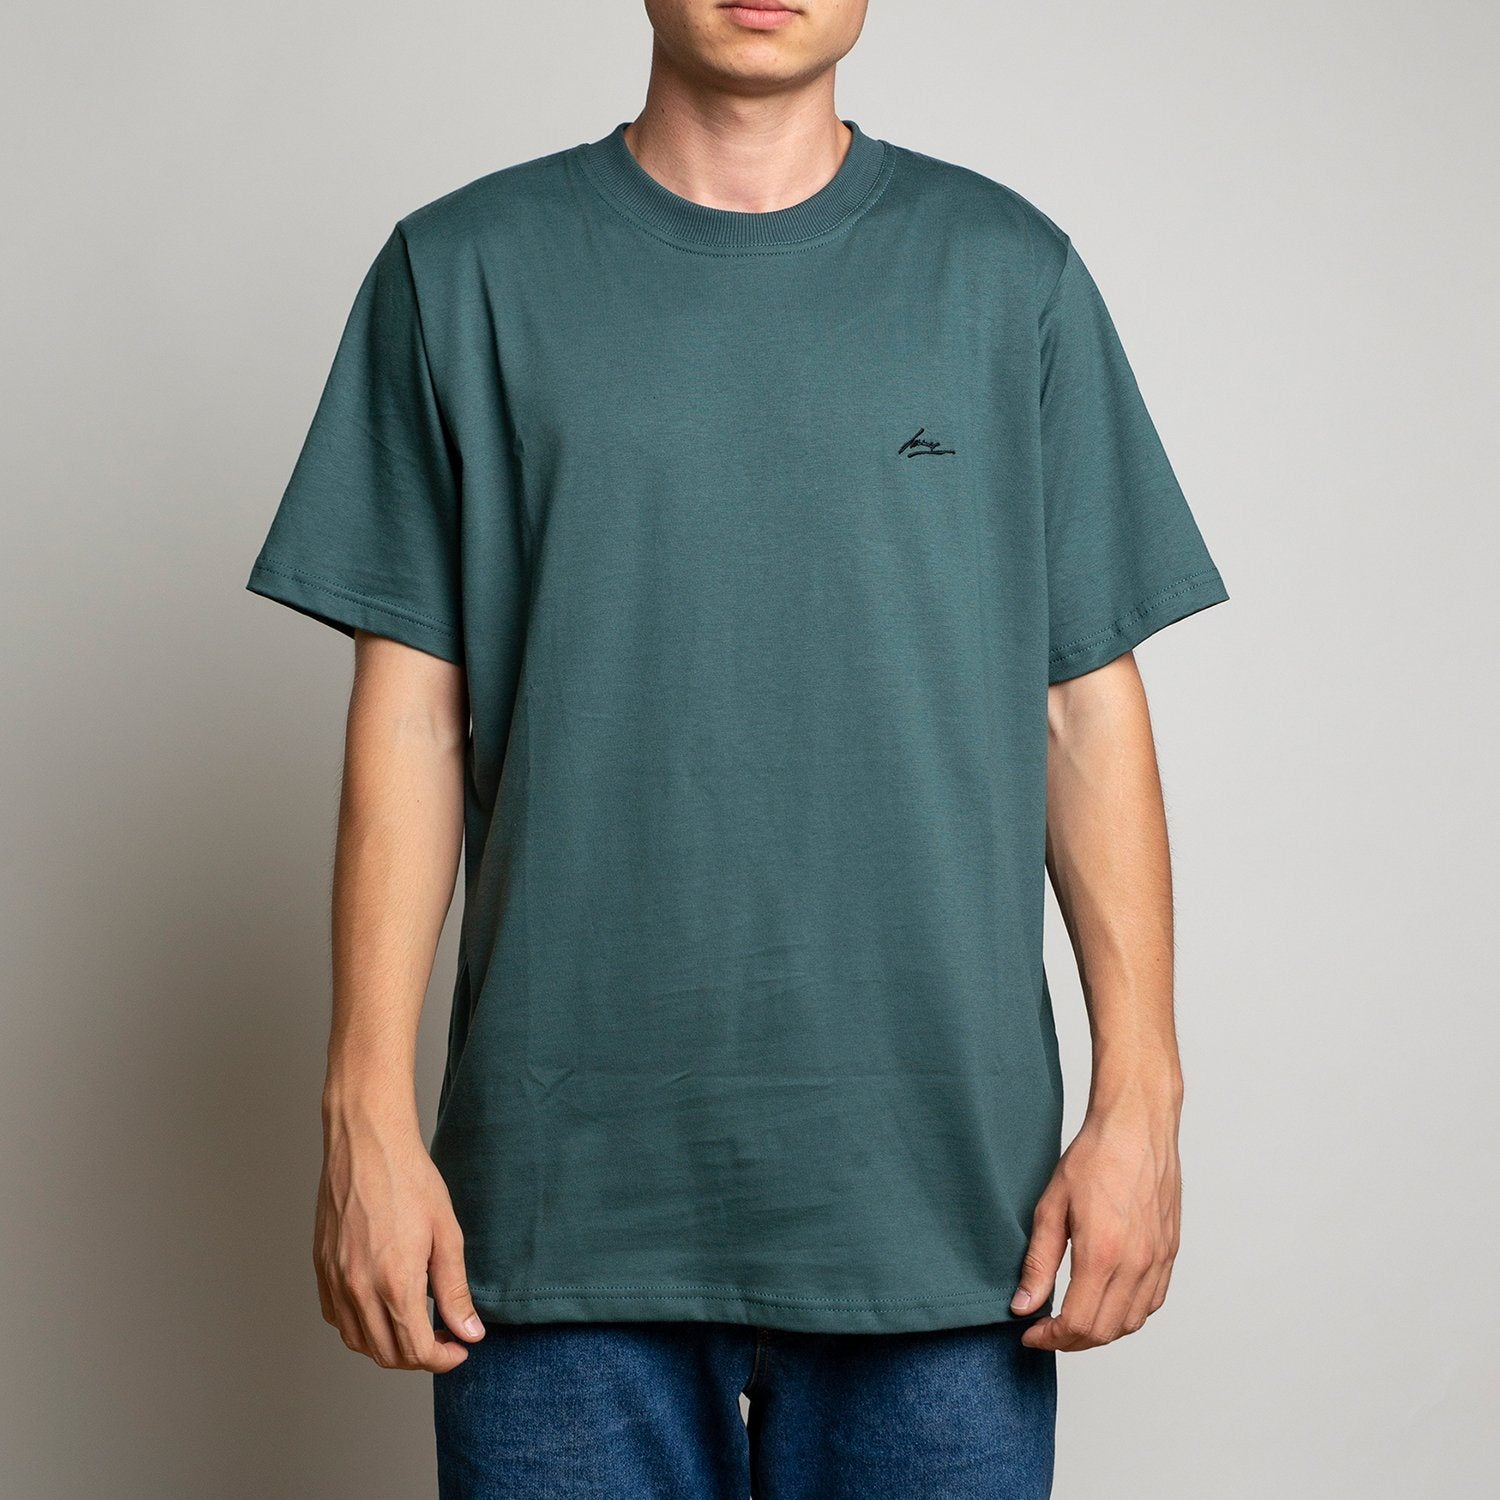 T-SHIRT - LANEE GREEN TEE